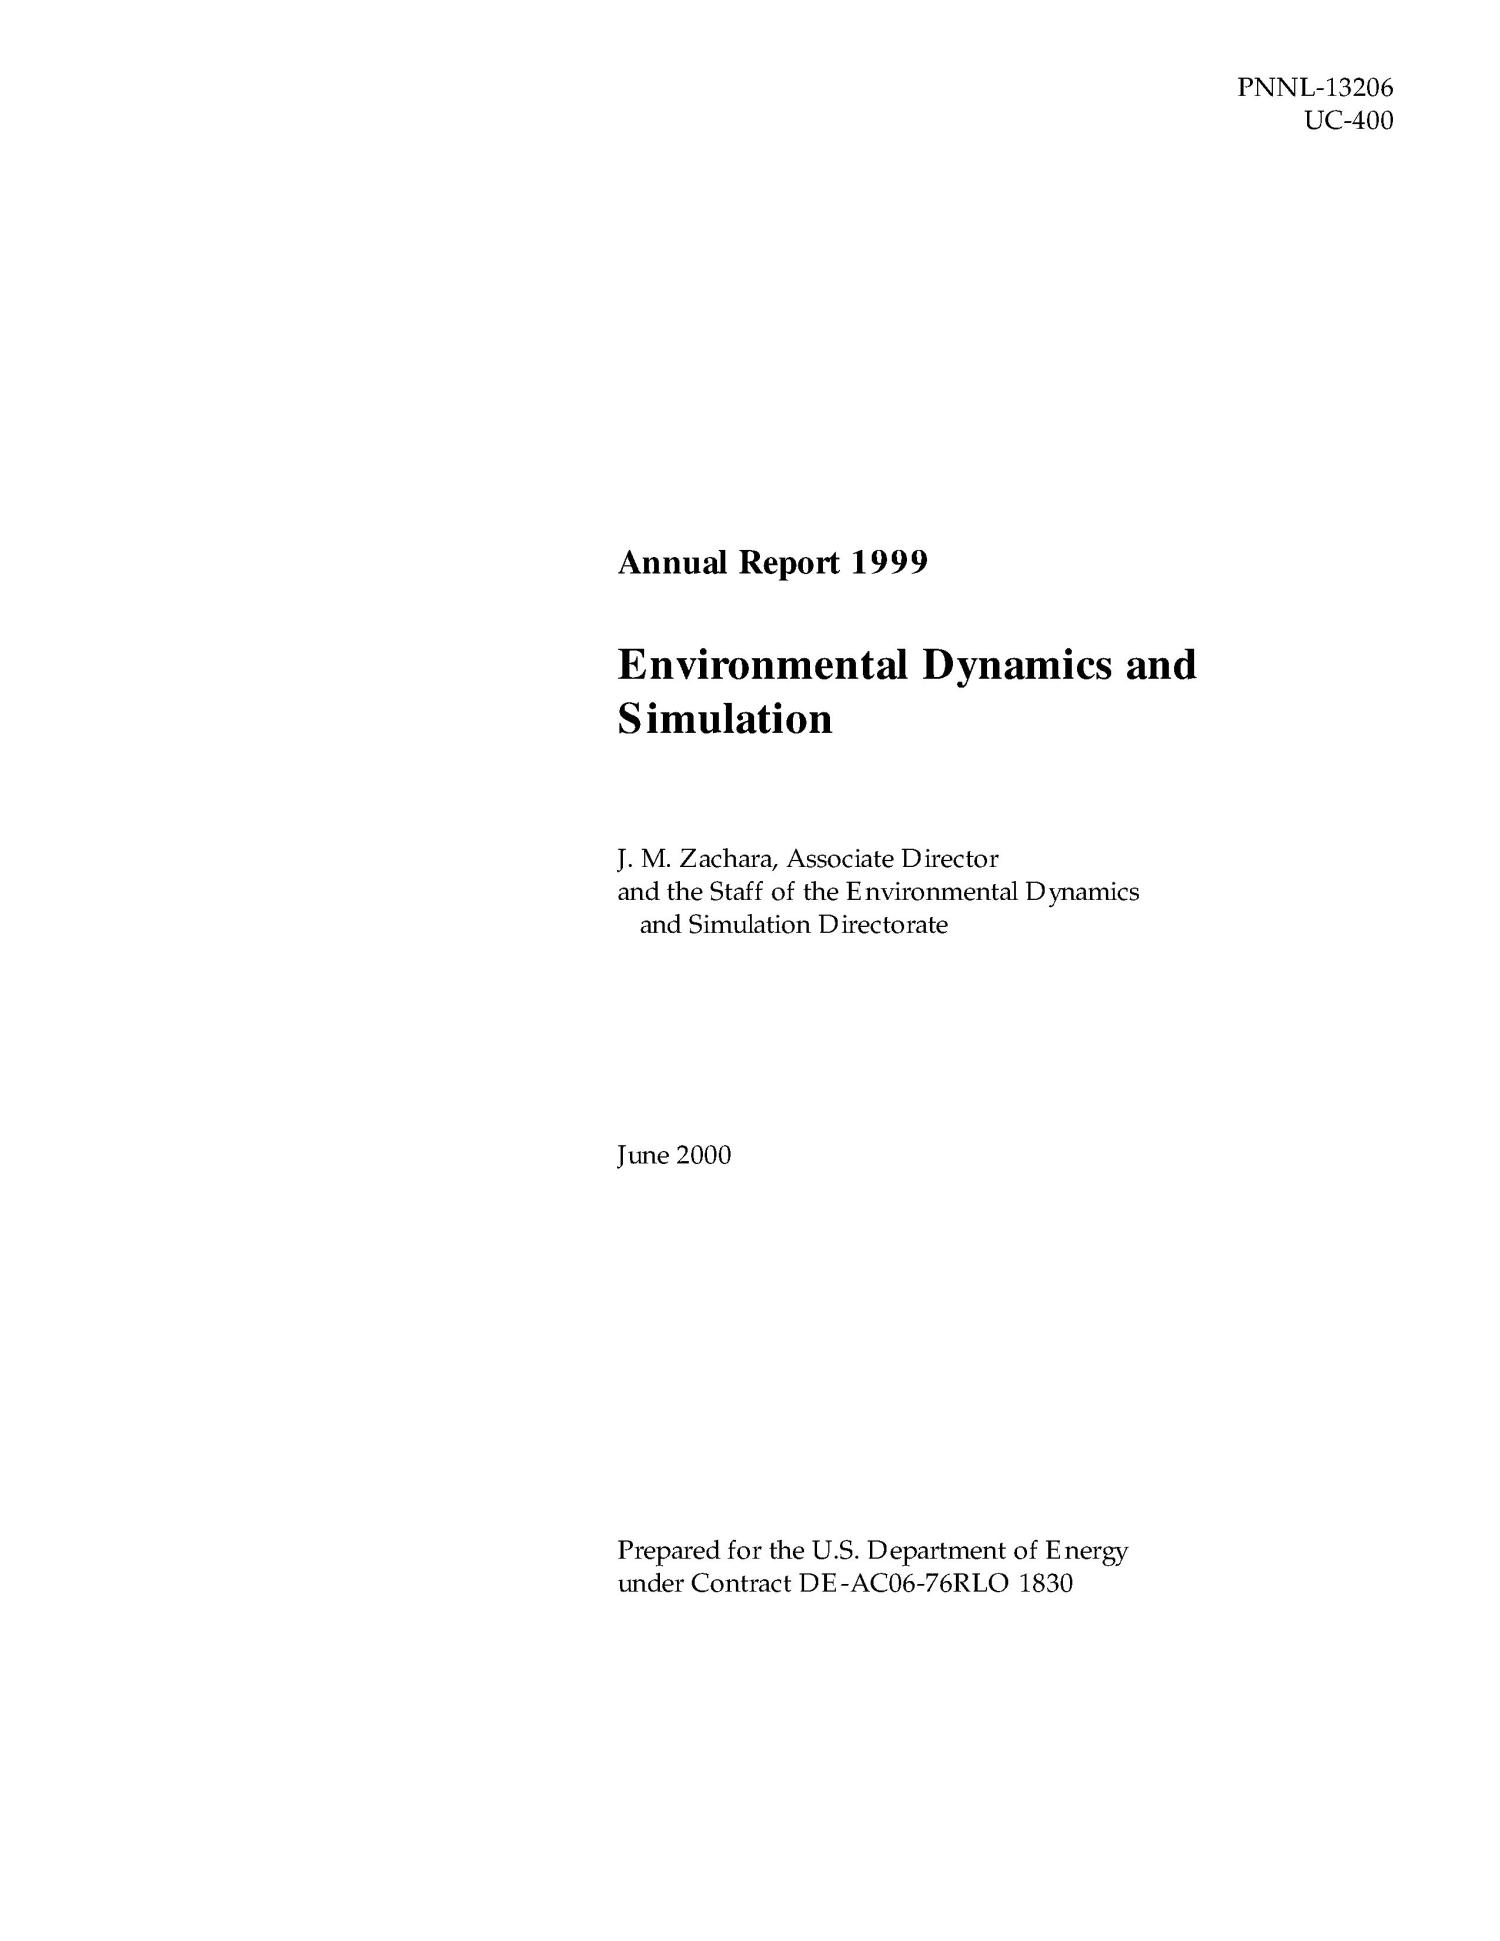 Annual Report 1999 Environmental Dynamics & Simulation                                                                                                      [Sequence #]: 1 of 5